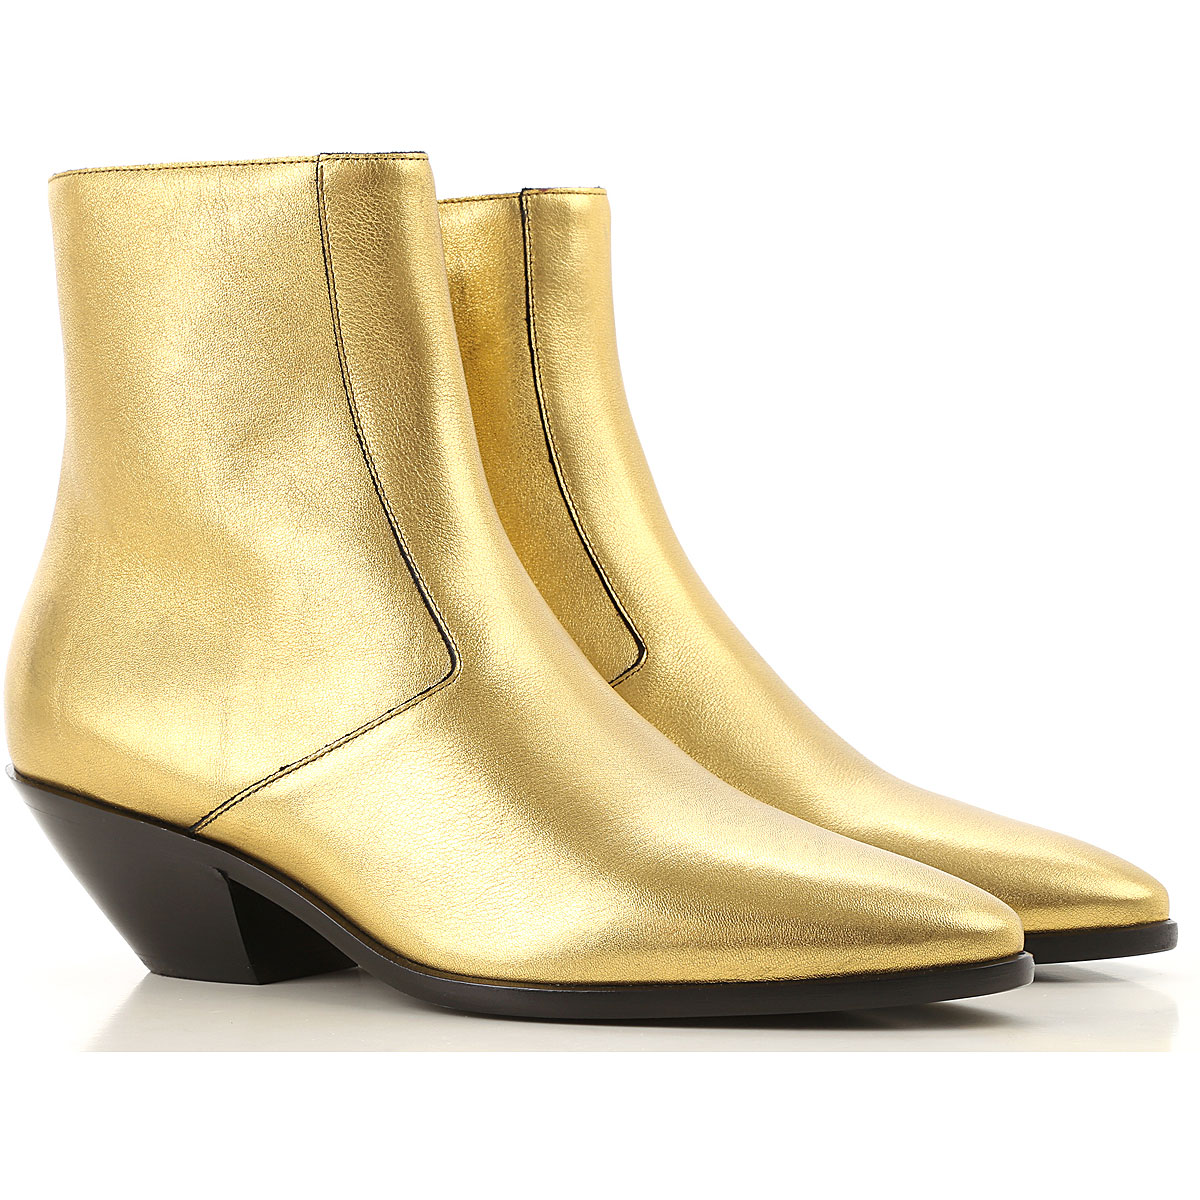 Yves Saint Laurent Boots for Women, Booties On Sale, Metallic Gold, Leather, 2019, 7